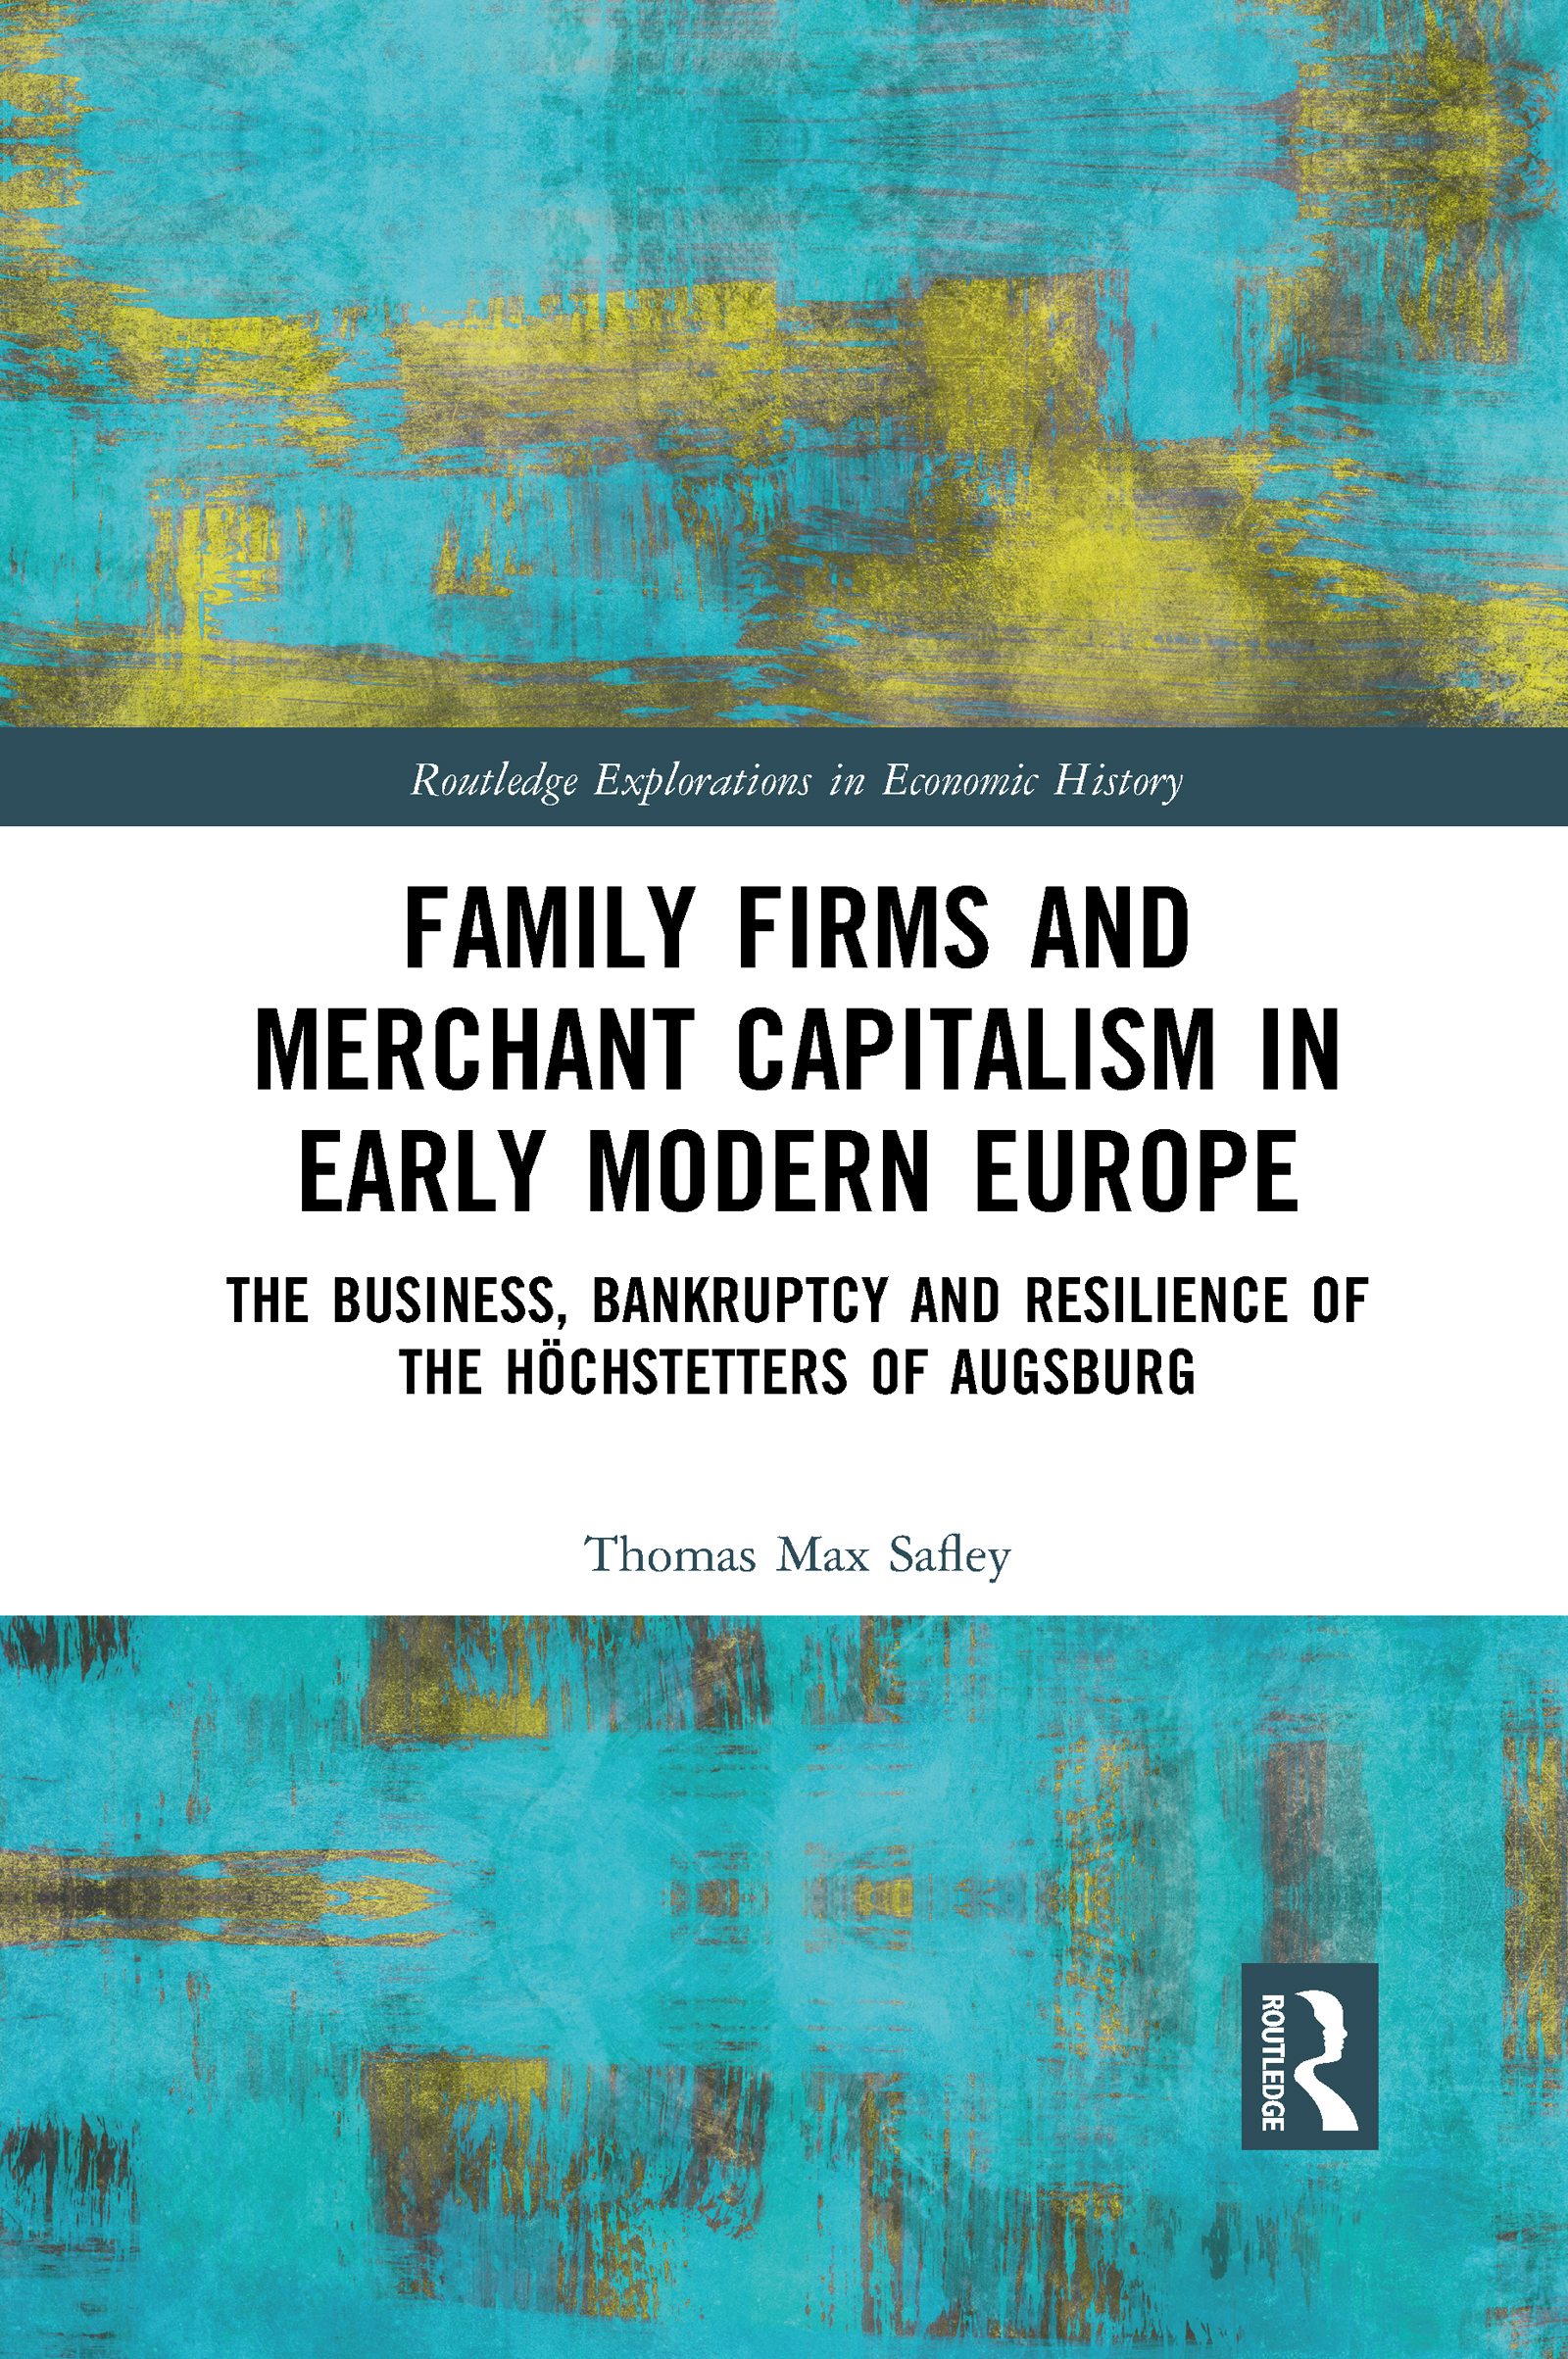 Family Firms and Merchant Capitalism in Early Modern Europe